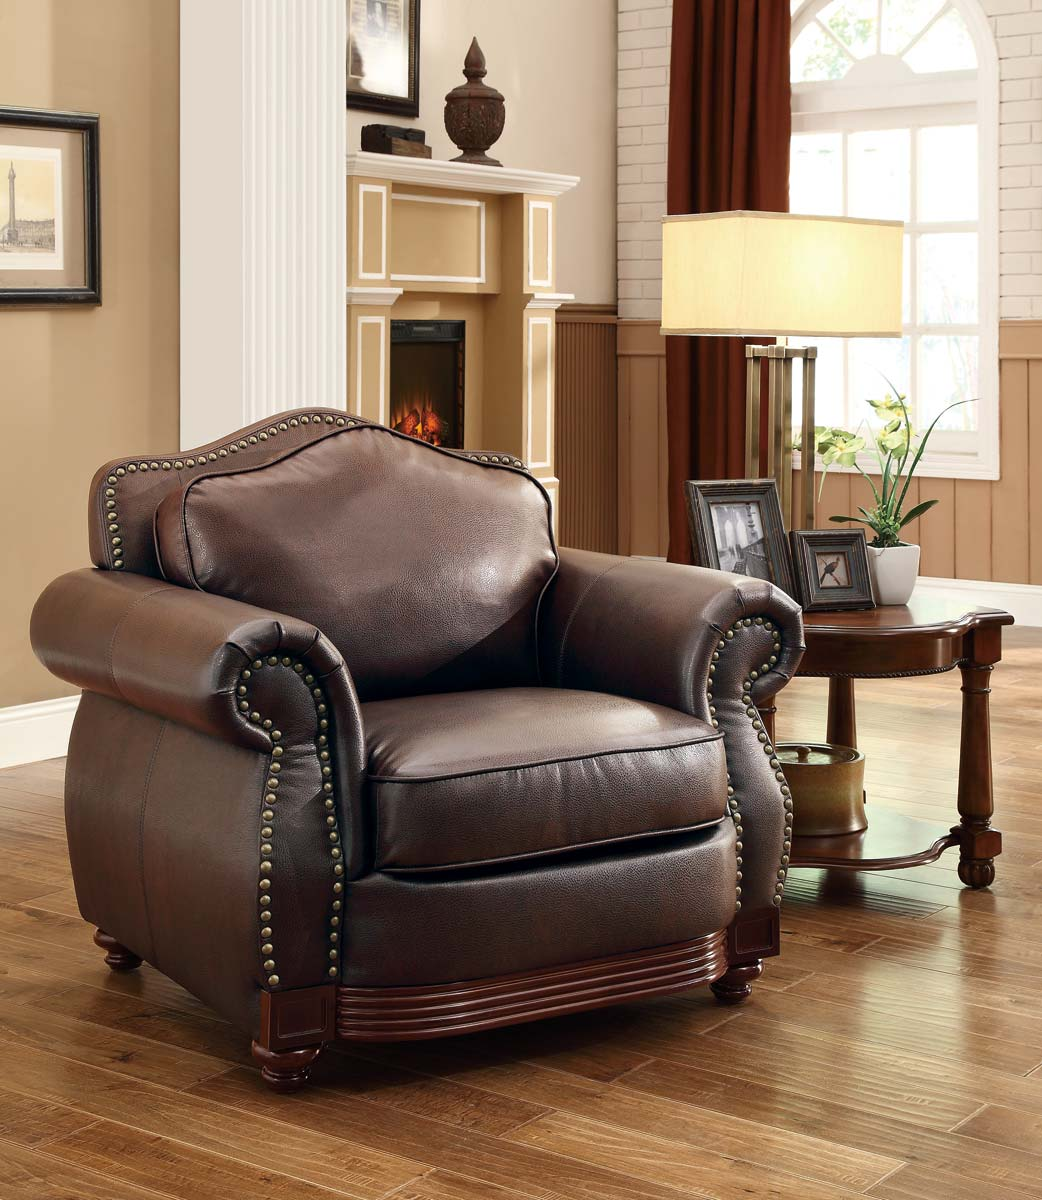 Homelegance Midwood Bonded Leather Chair   Dark Brown